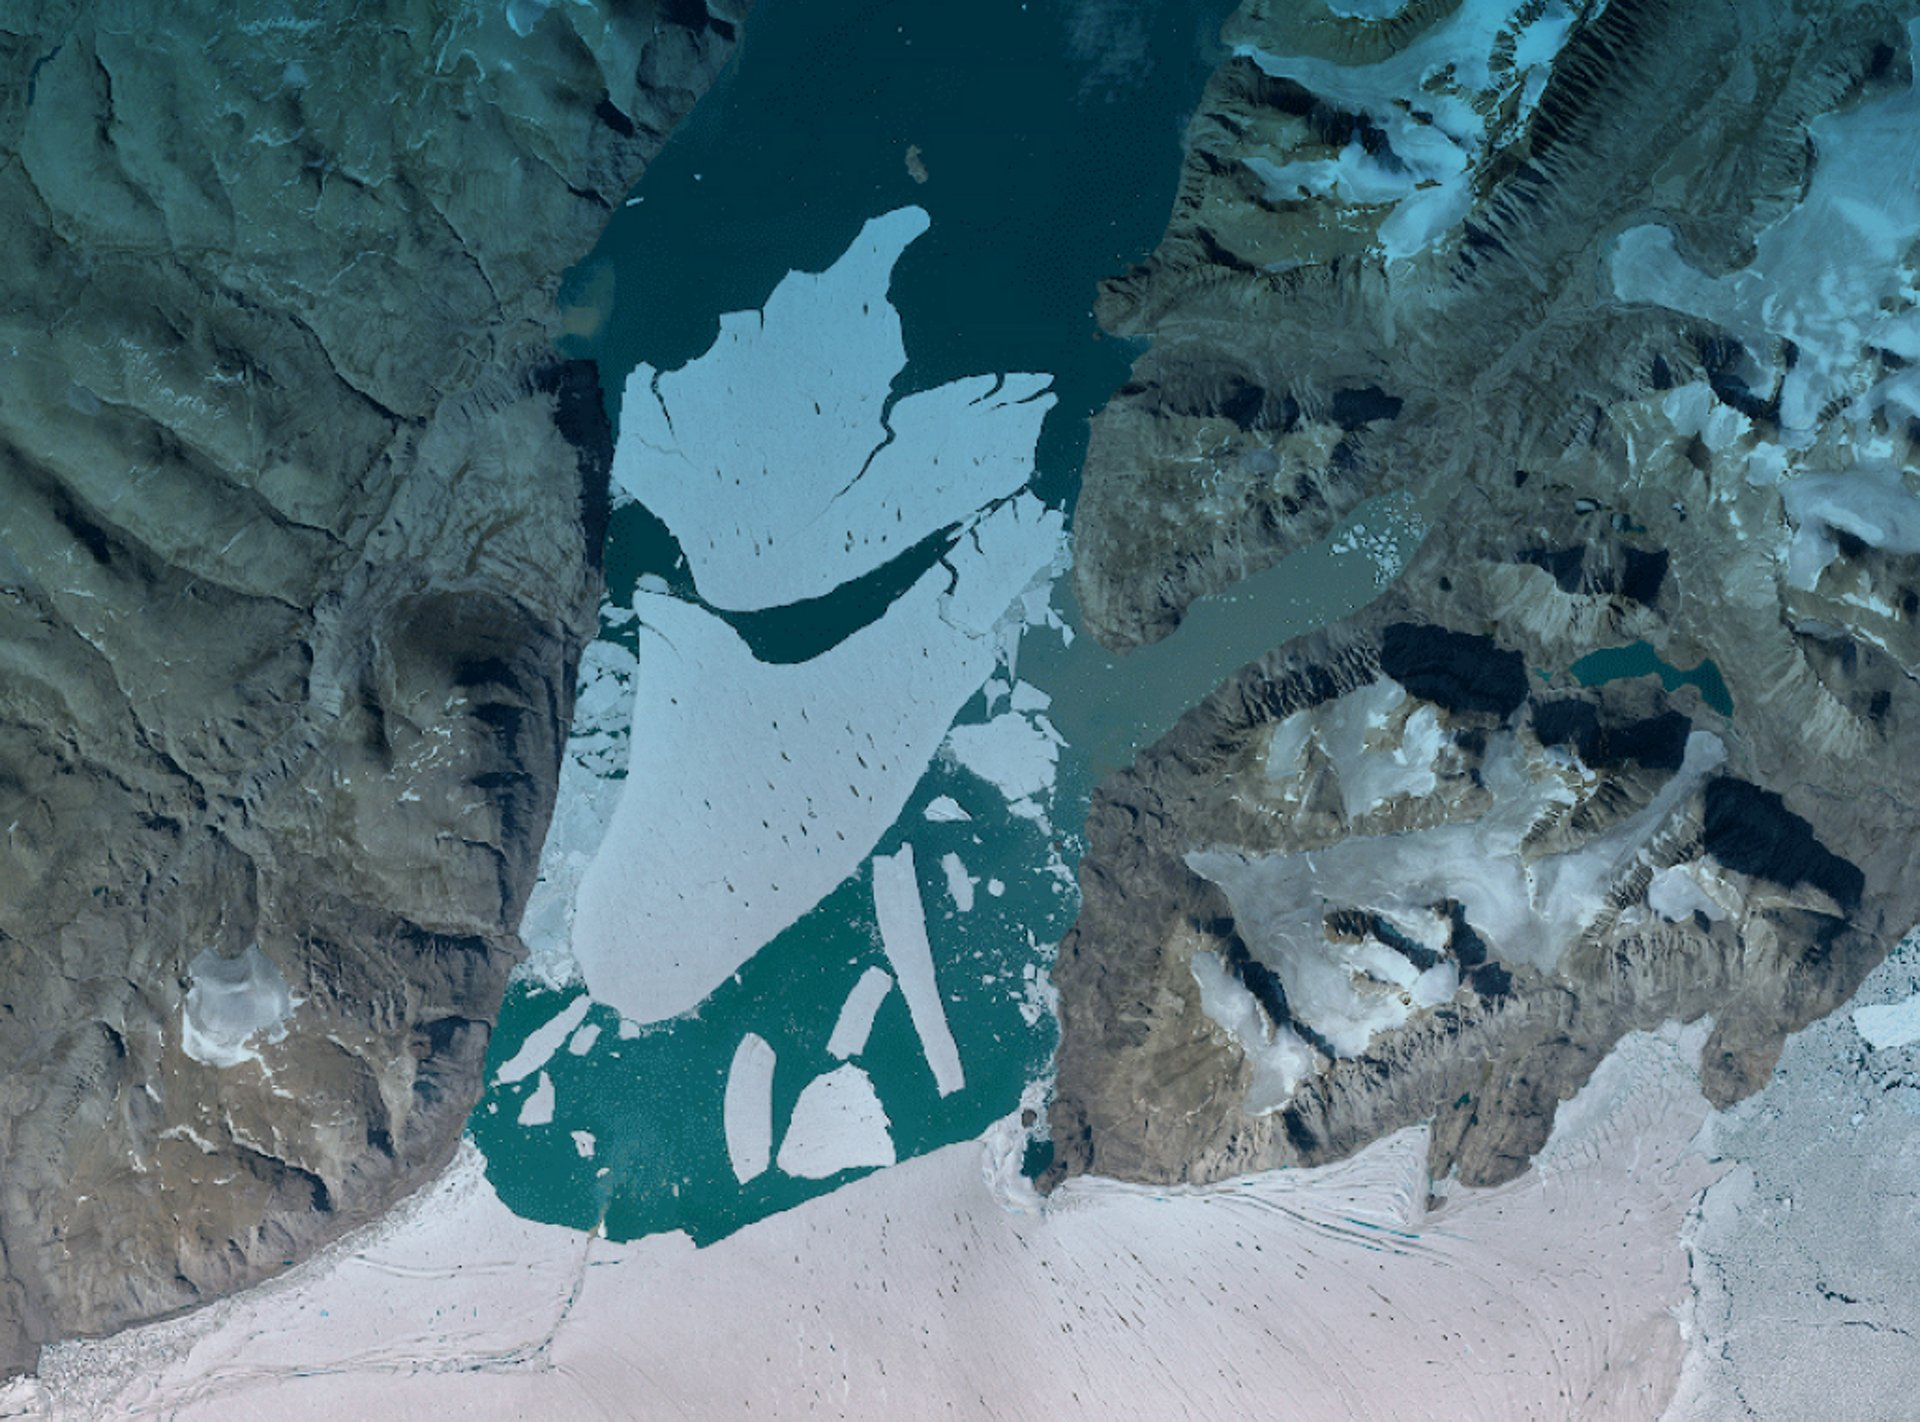 Space insights for climate action